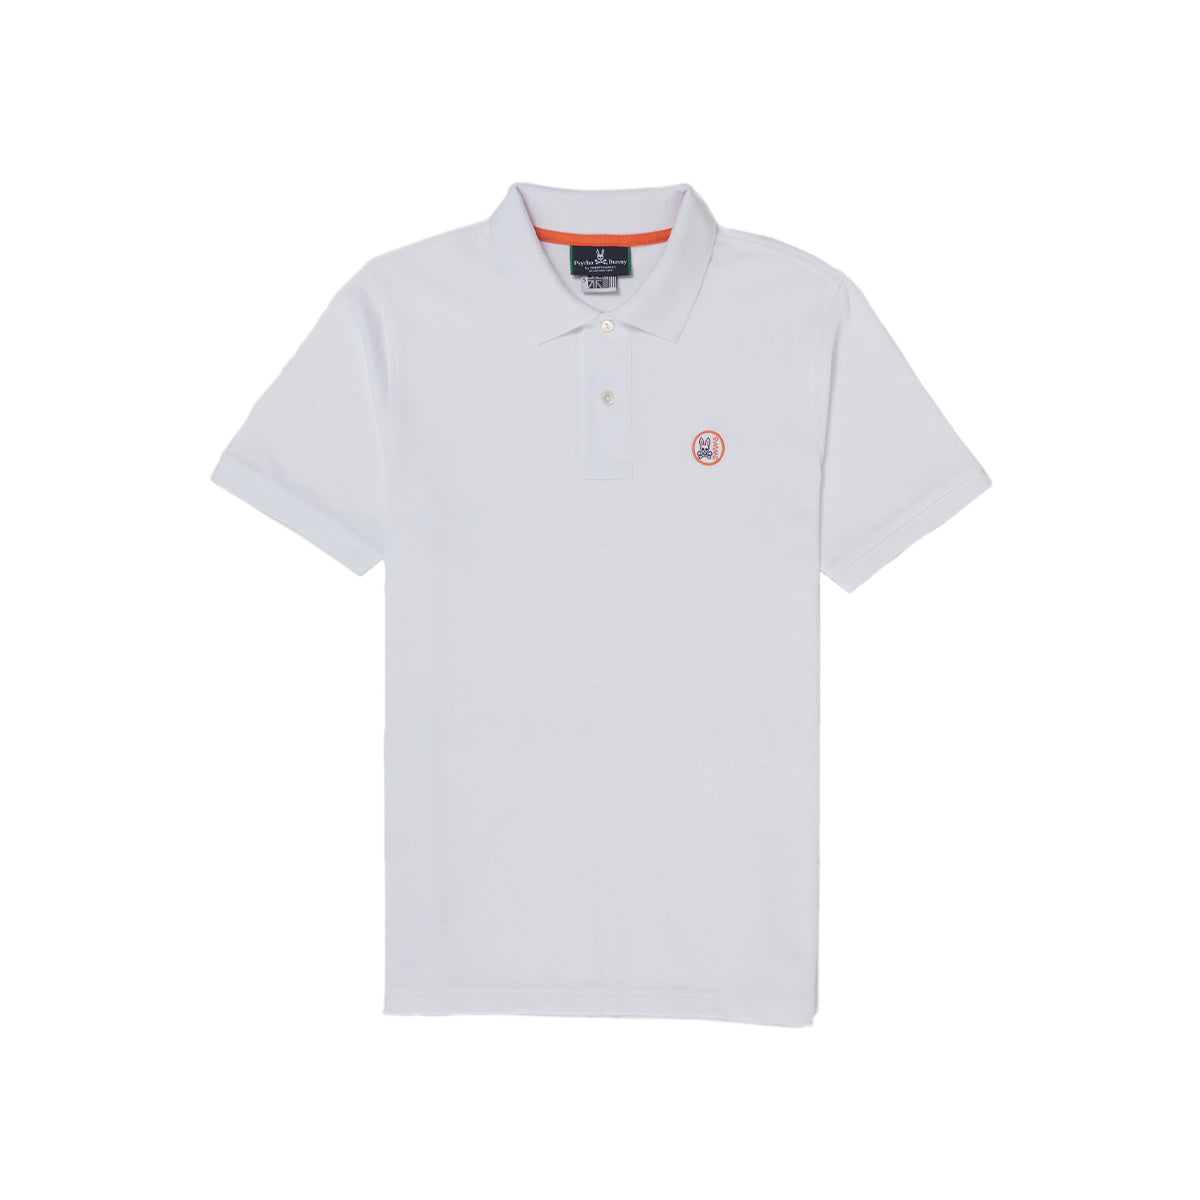 Psycho Bunny x SWIMS Arendale Polo - background::white,variant::white